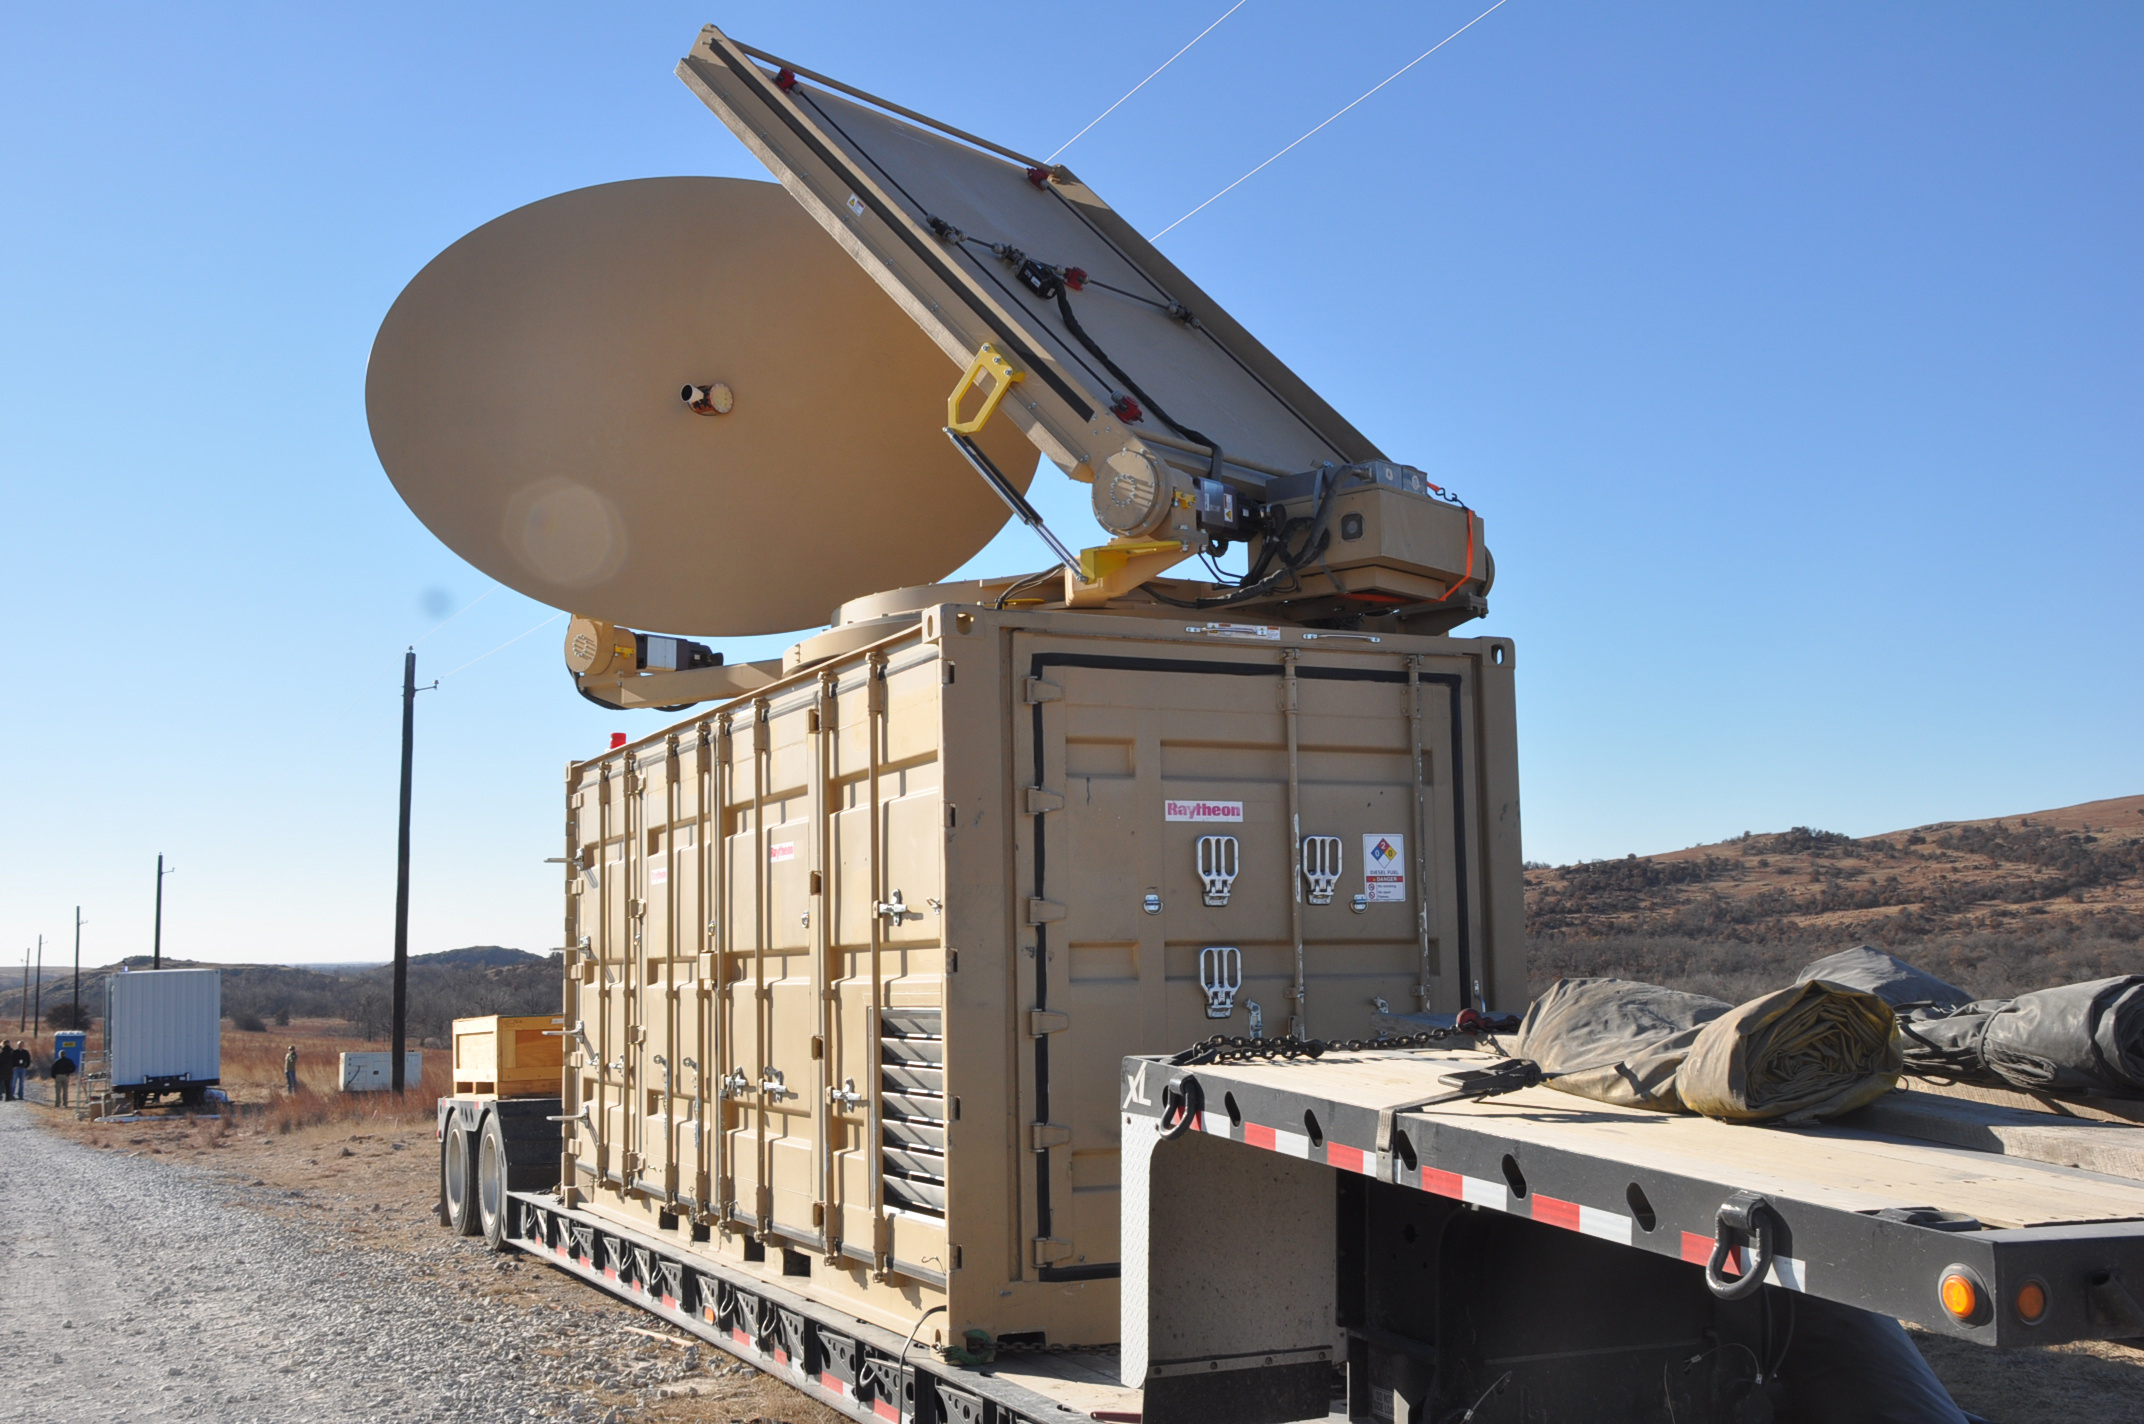 Raytheon Demonstrates Directed Energy Weapons at Army Exercise